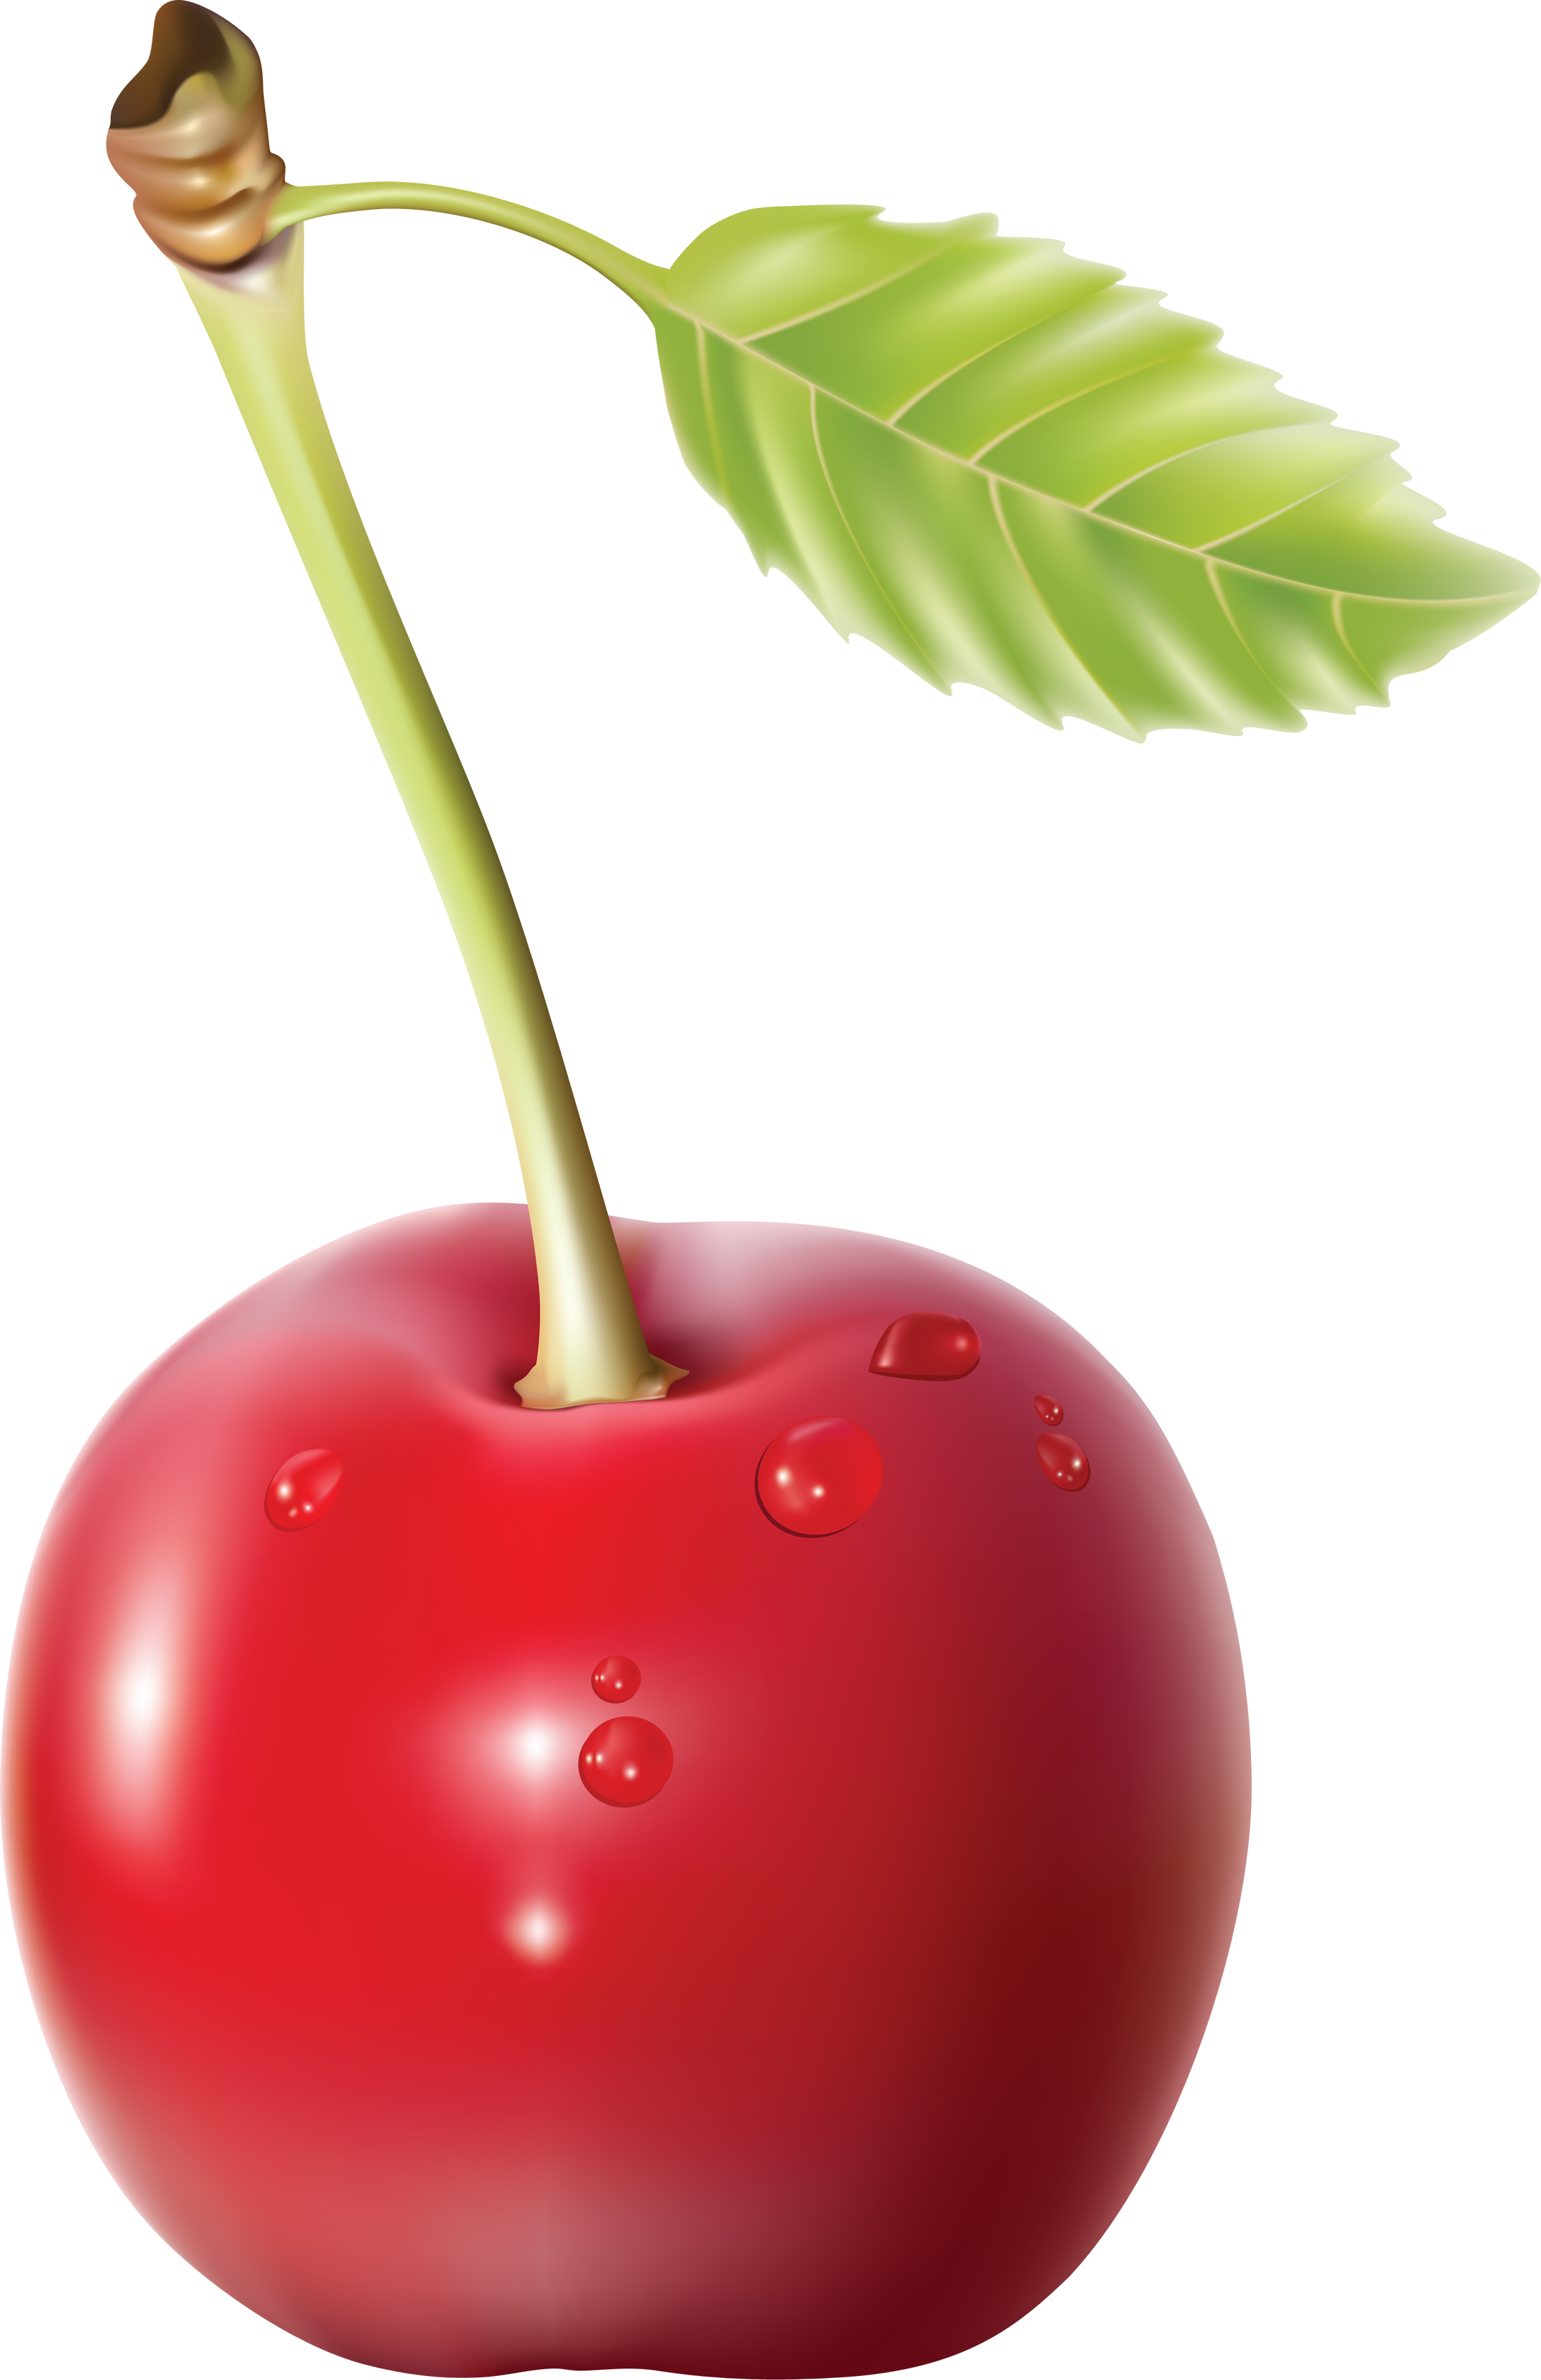 Drawn Cherry with Water Drops 2264.96 Kb